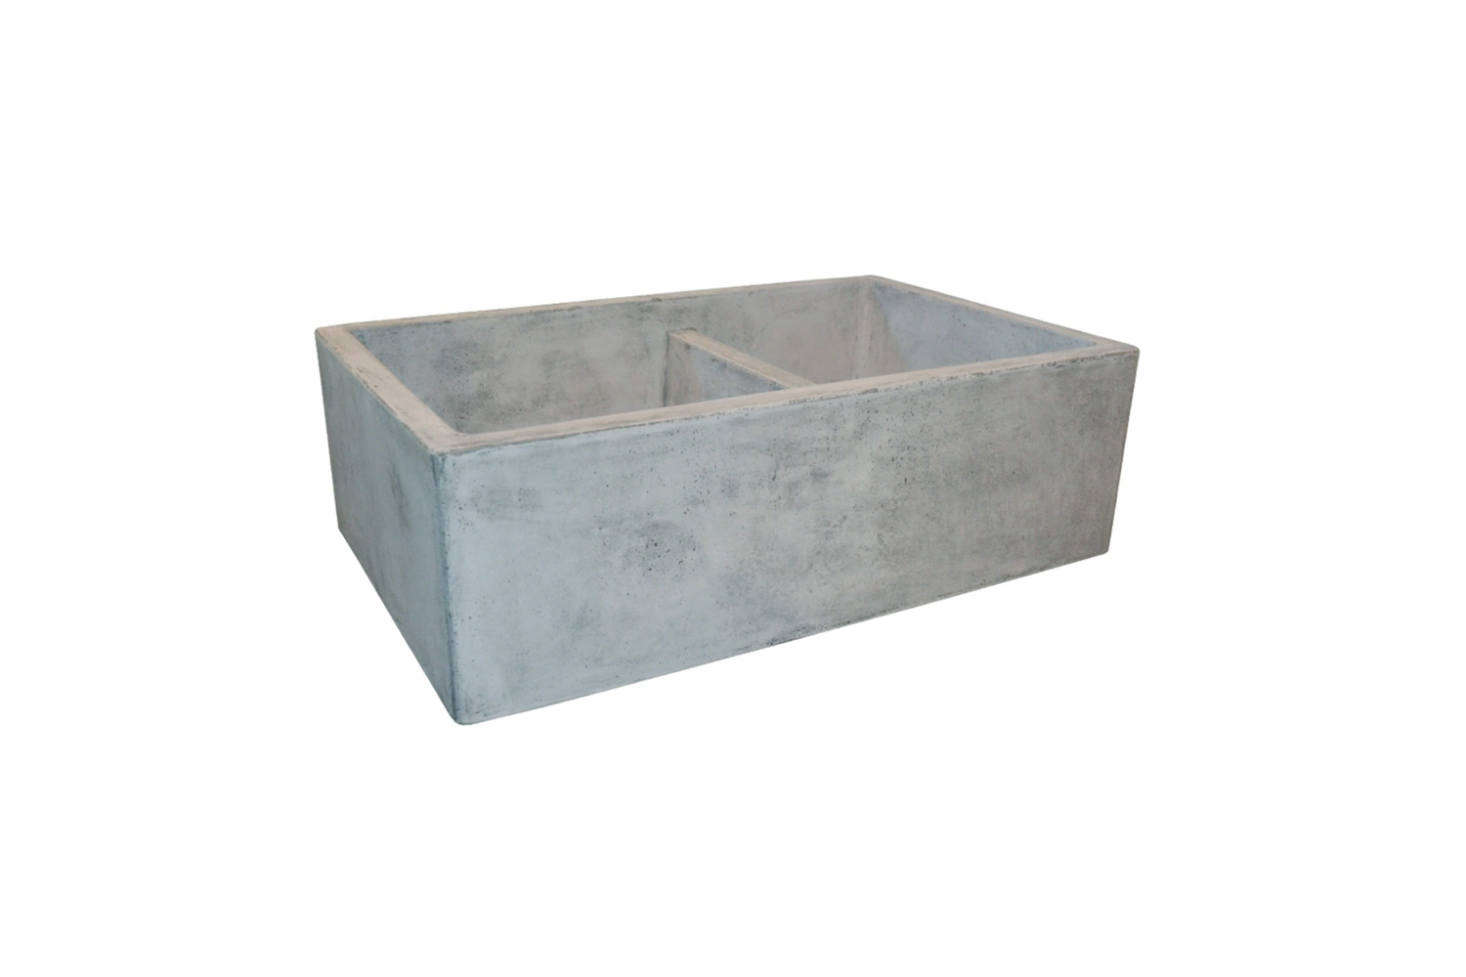 The Native Trails Farmhouse 33-Inch Double Bowl Kitchen Sink is an off-the-shelf alternative to the unique antique soapstone laundry sink sourced for the kitchen here. This one is $src=